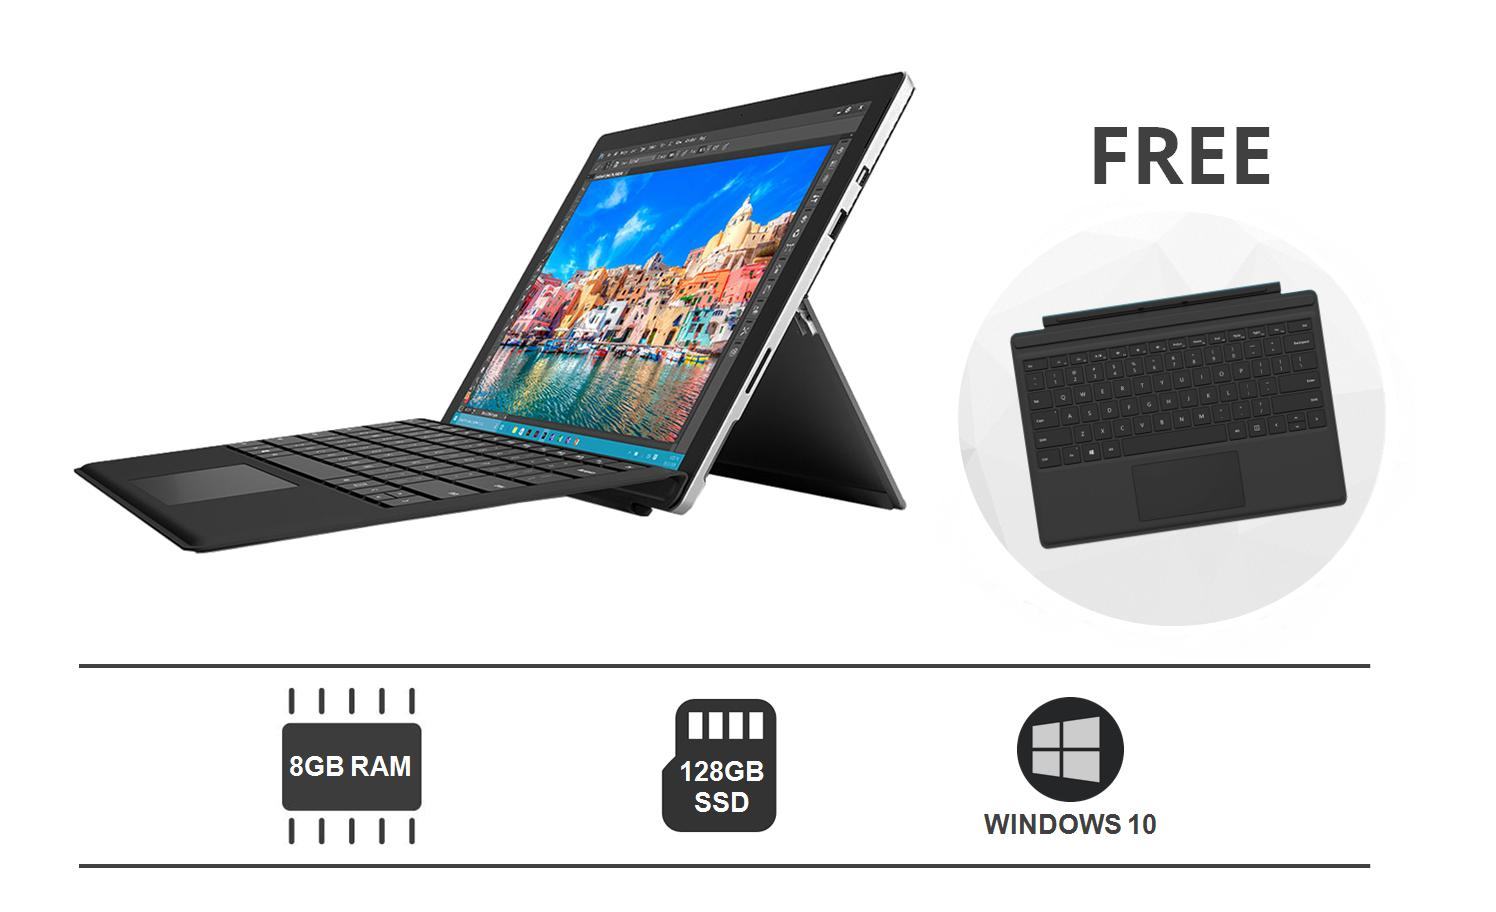 Microsoft Surface Go Tablet (10 inch, 8GB RAM, 128GB SSD, Windows 10 Pro)  with Type Cover (Black) Bundle